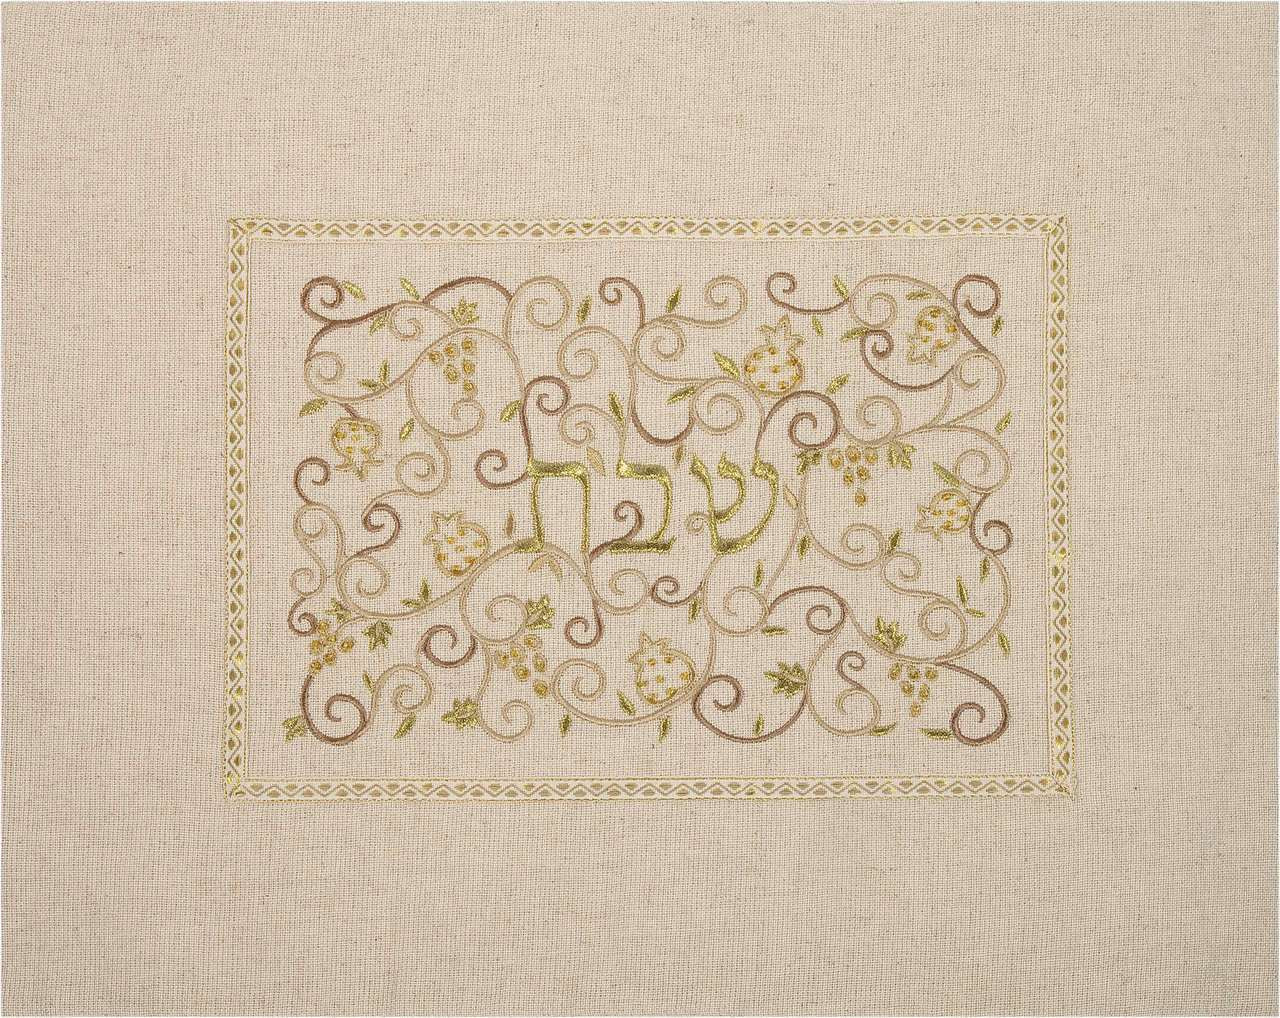 Linen & Gold Challah Cover